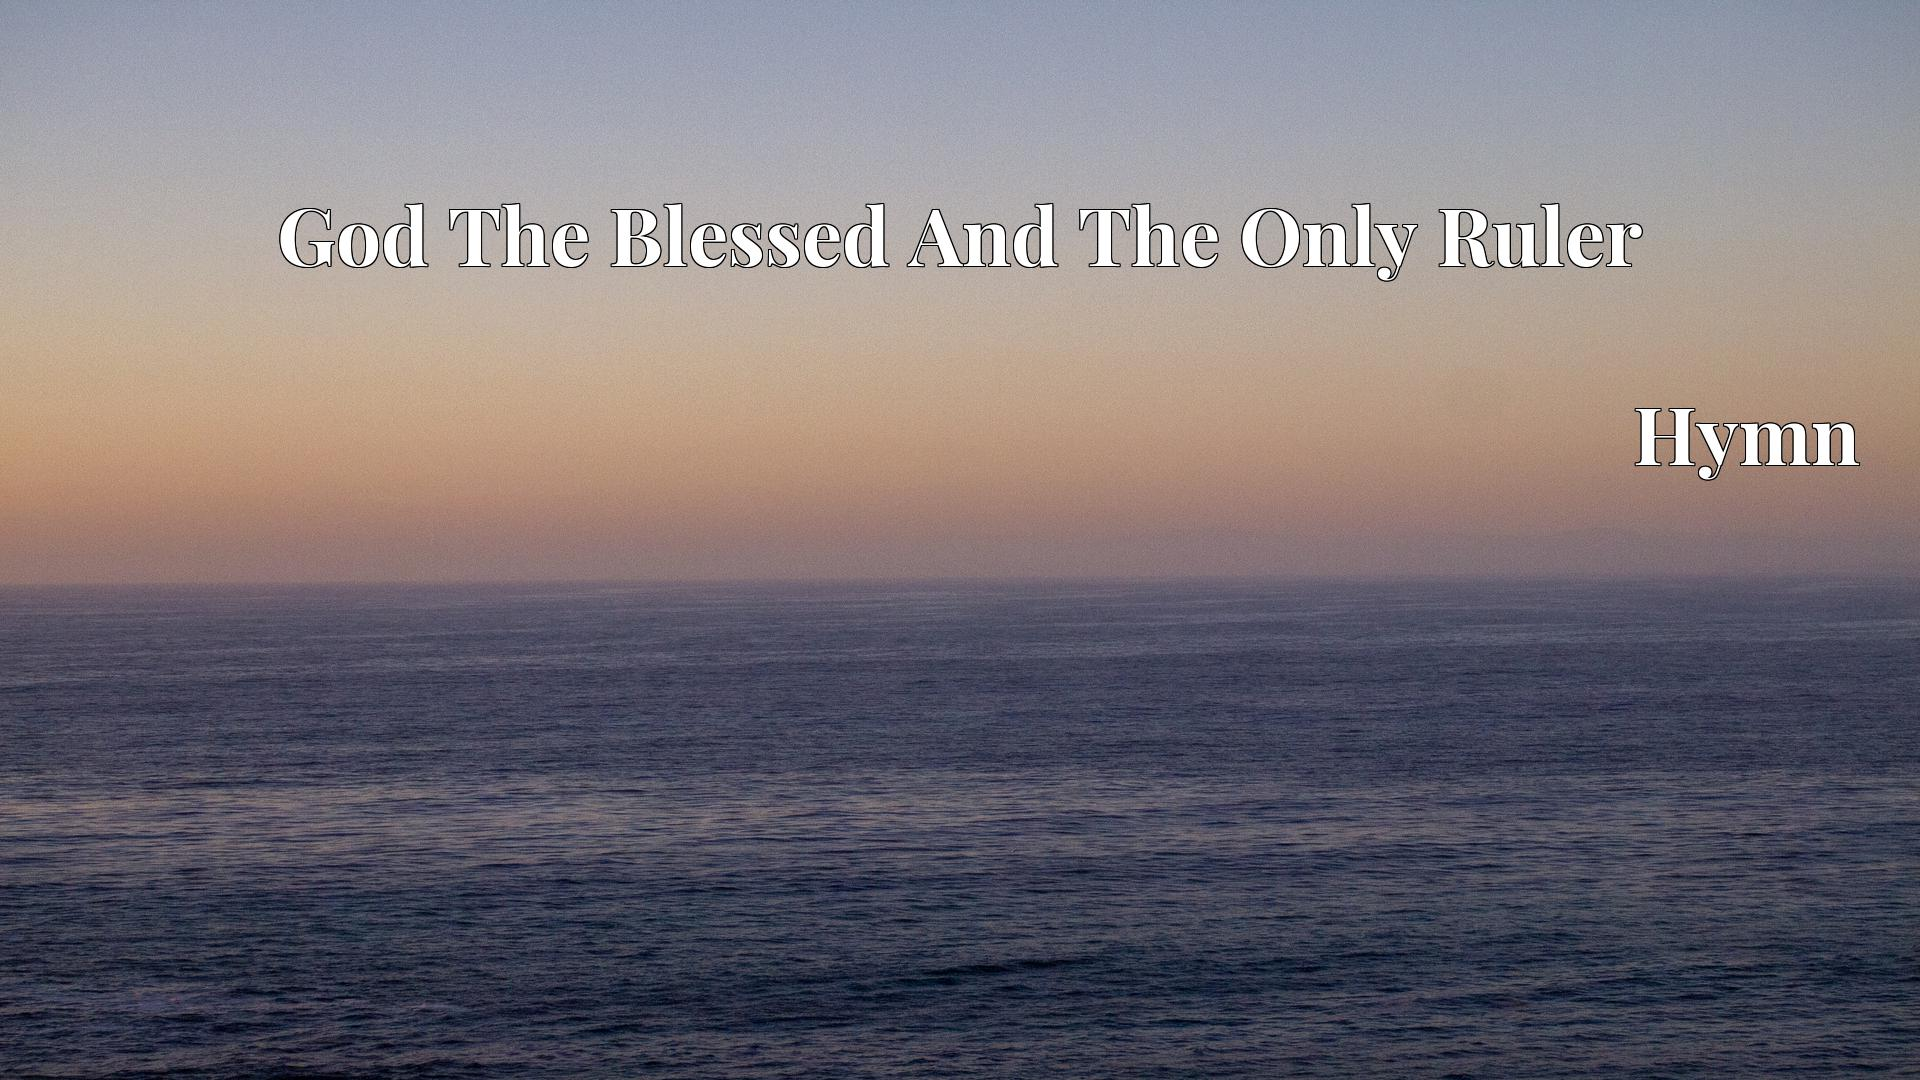 God The Blessed And The Only Ruler - Hymn